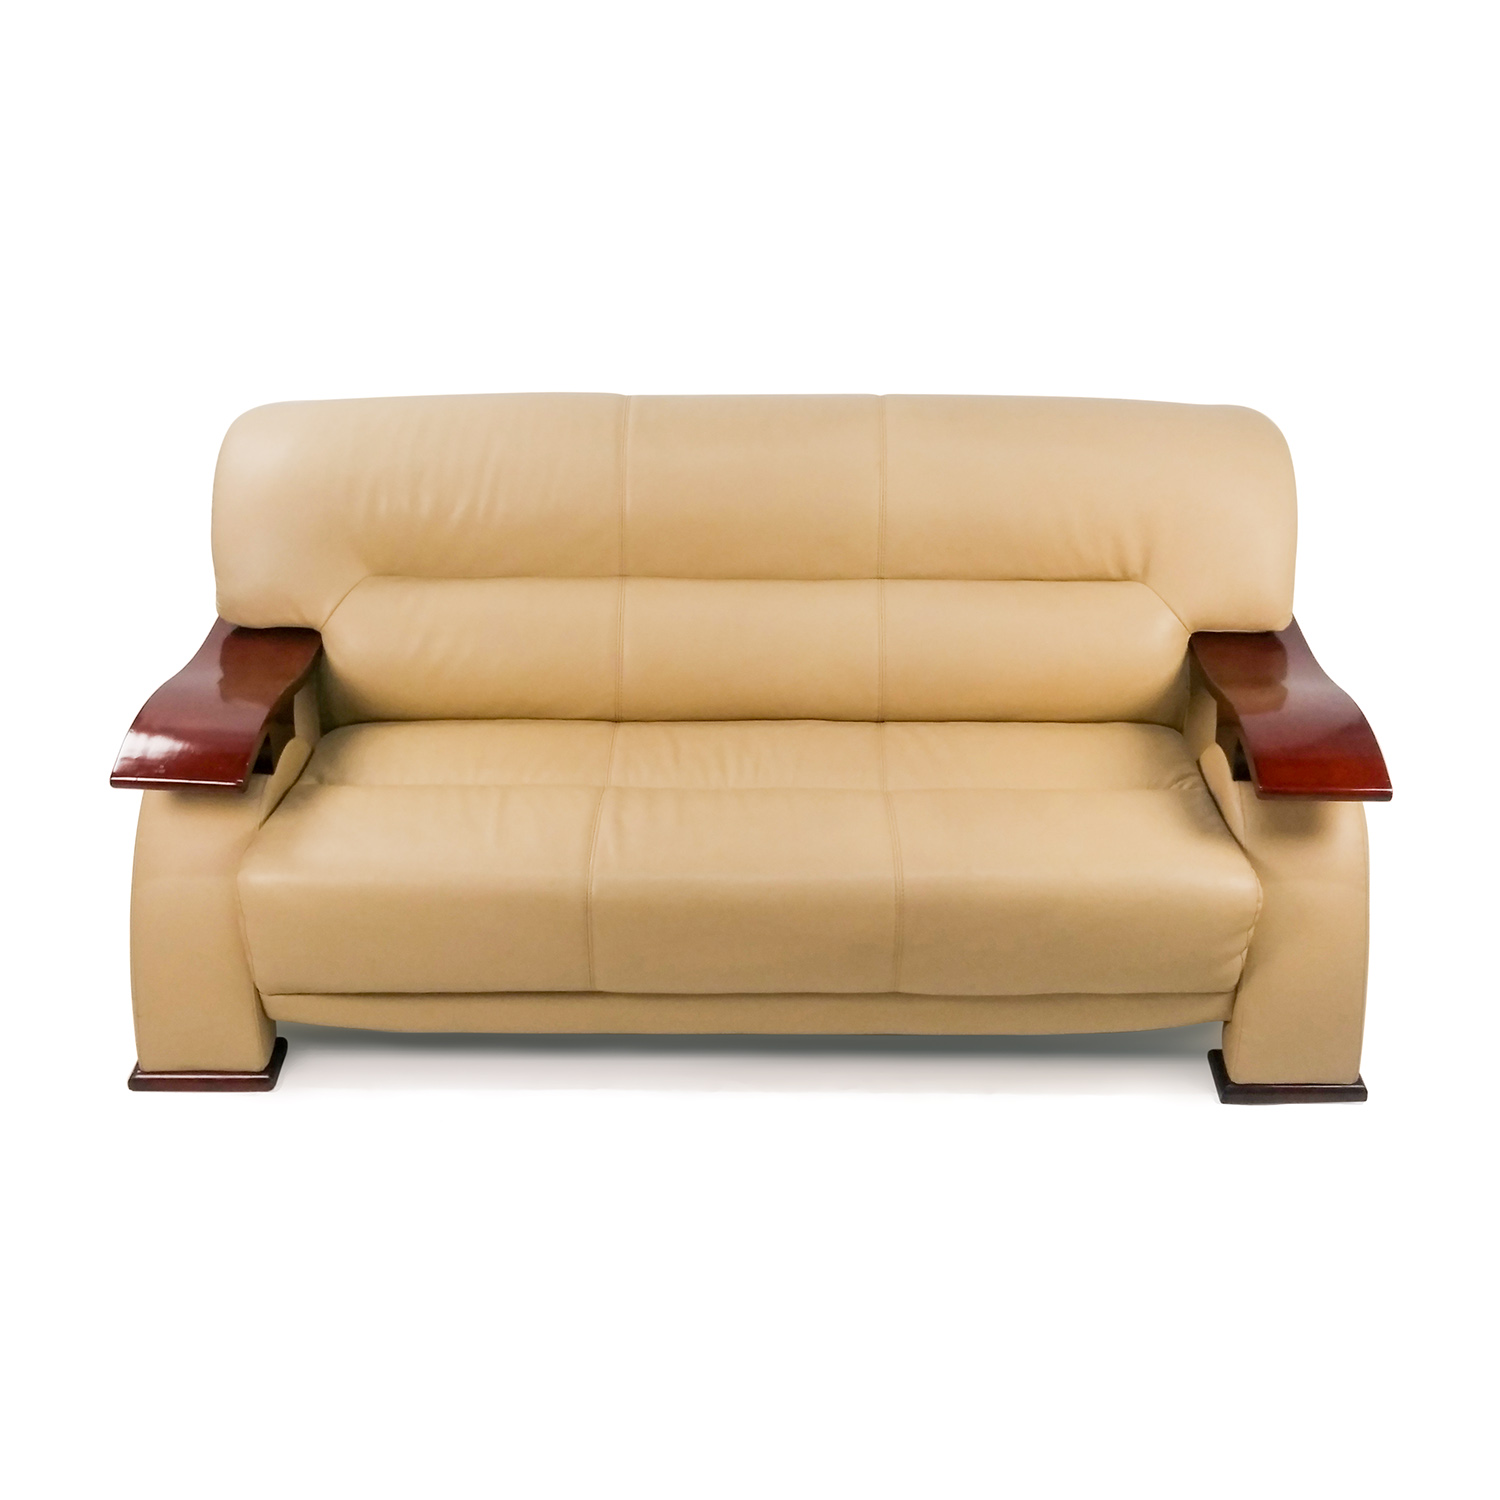 Contemporary Beige Leather Sofa with Wood Arms / Classic Sofas